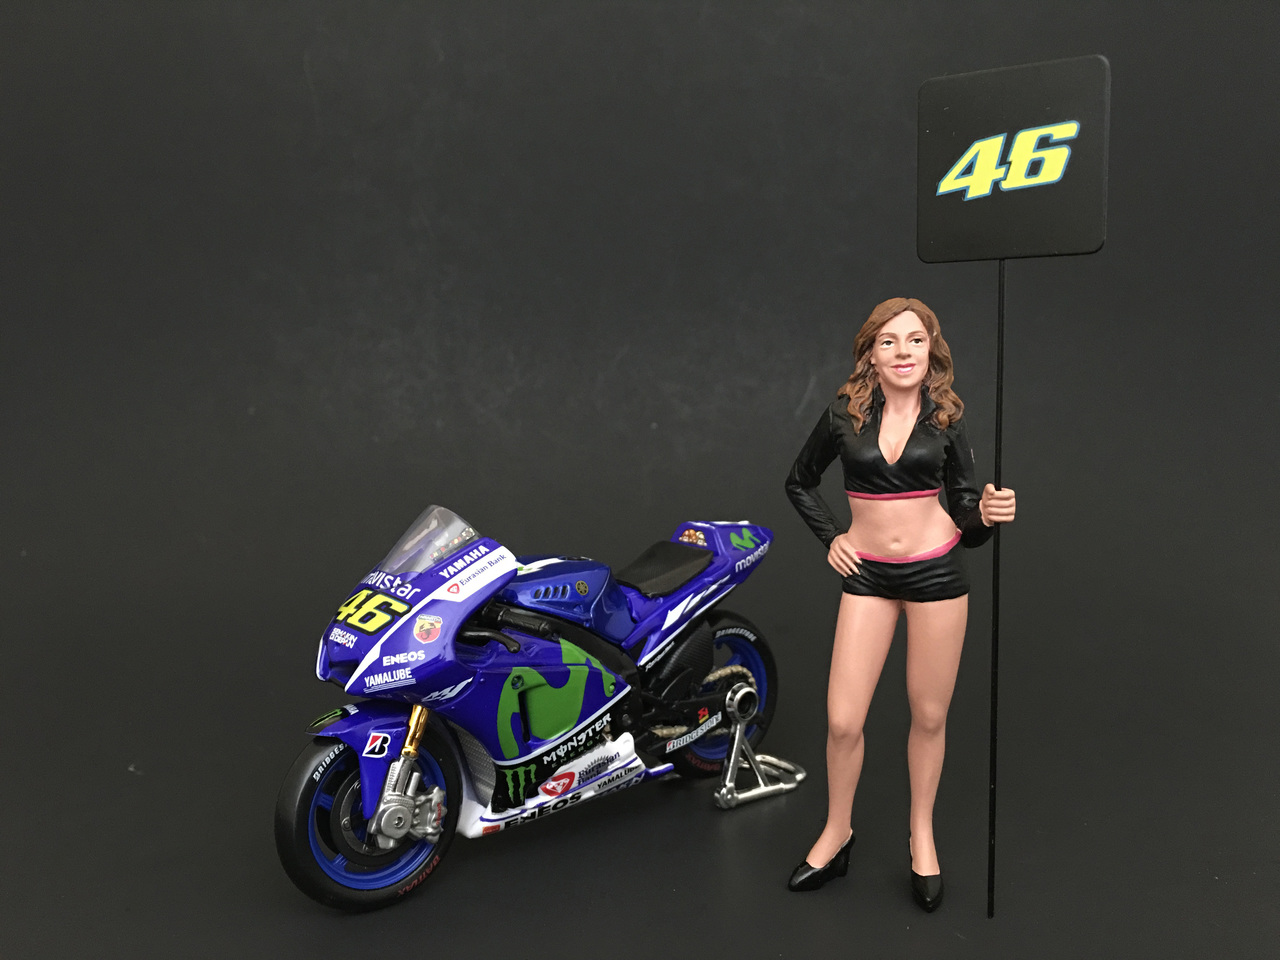 Paddock Girl Figure For 124 Scale Models by American Diorama